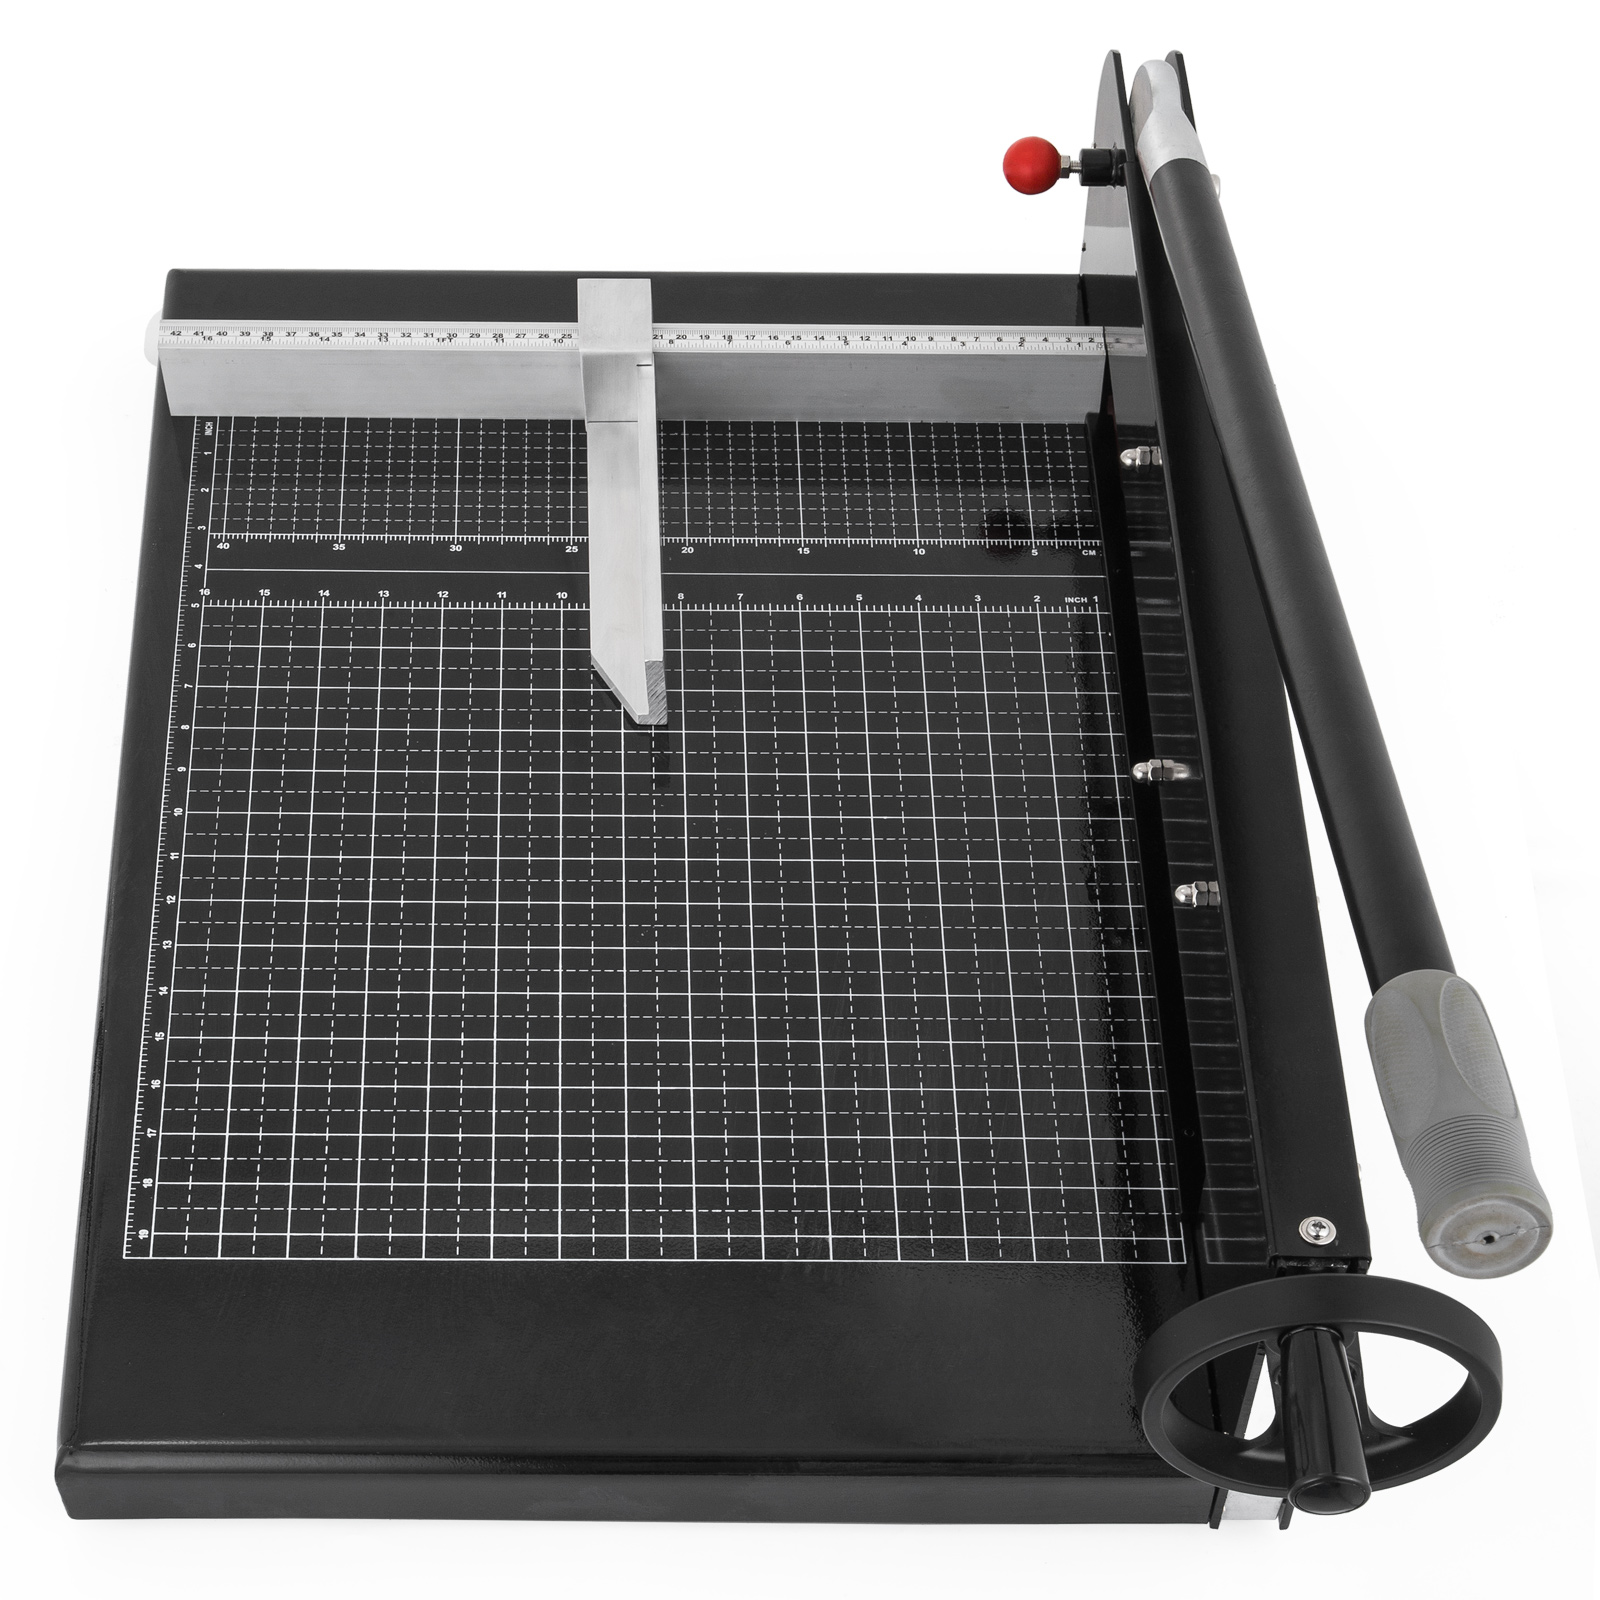 12-17-19-034-Width-Guillotine-Paper-Cutter-Stack-Paper-Guillotine-Trimmer thumbnail 47